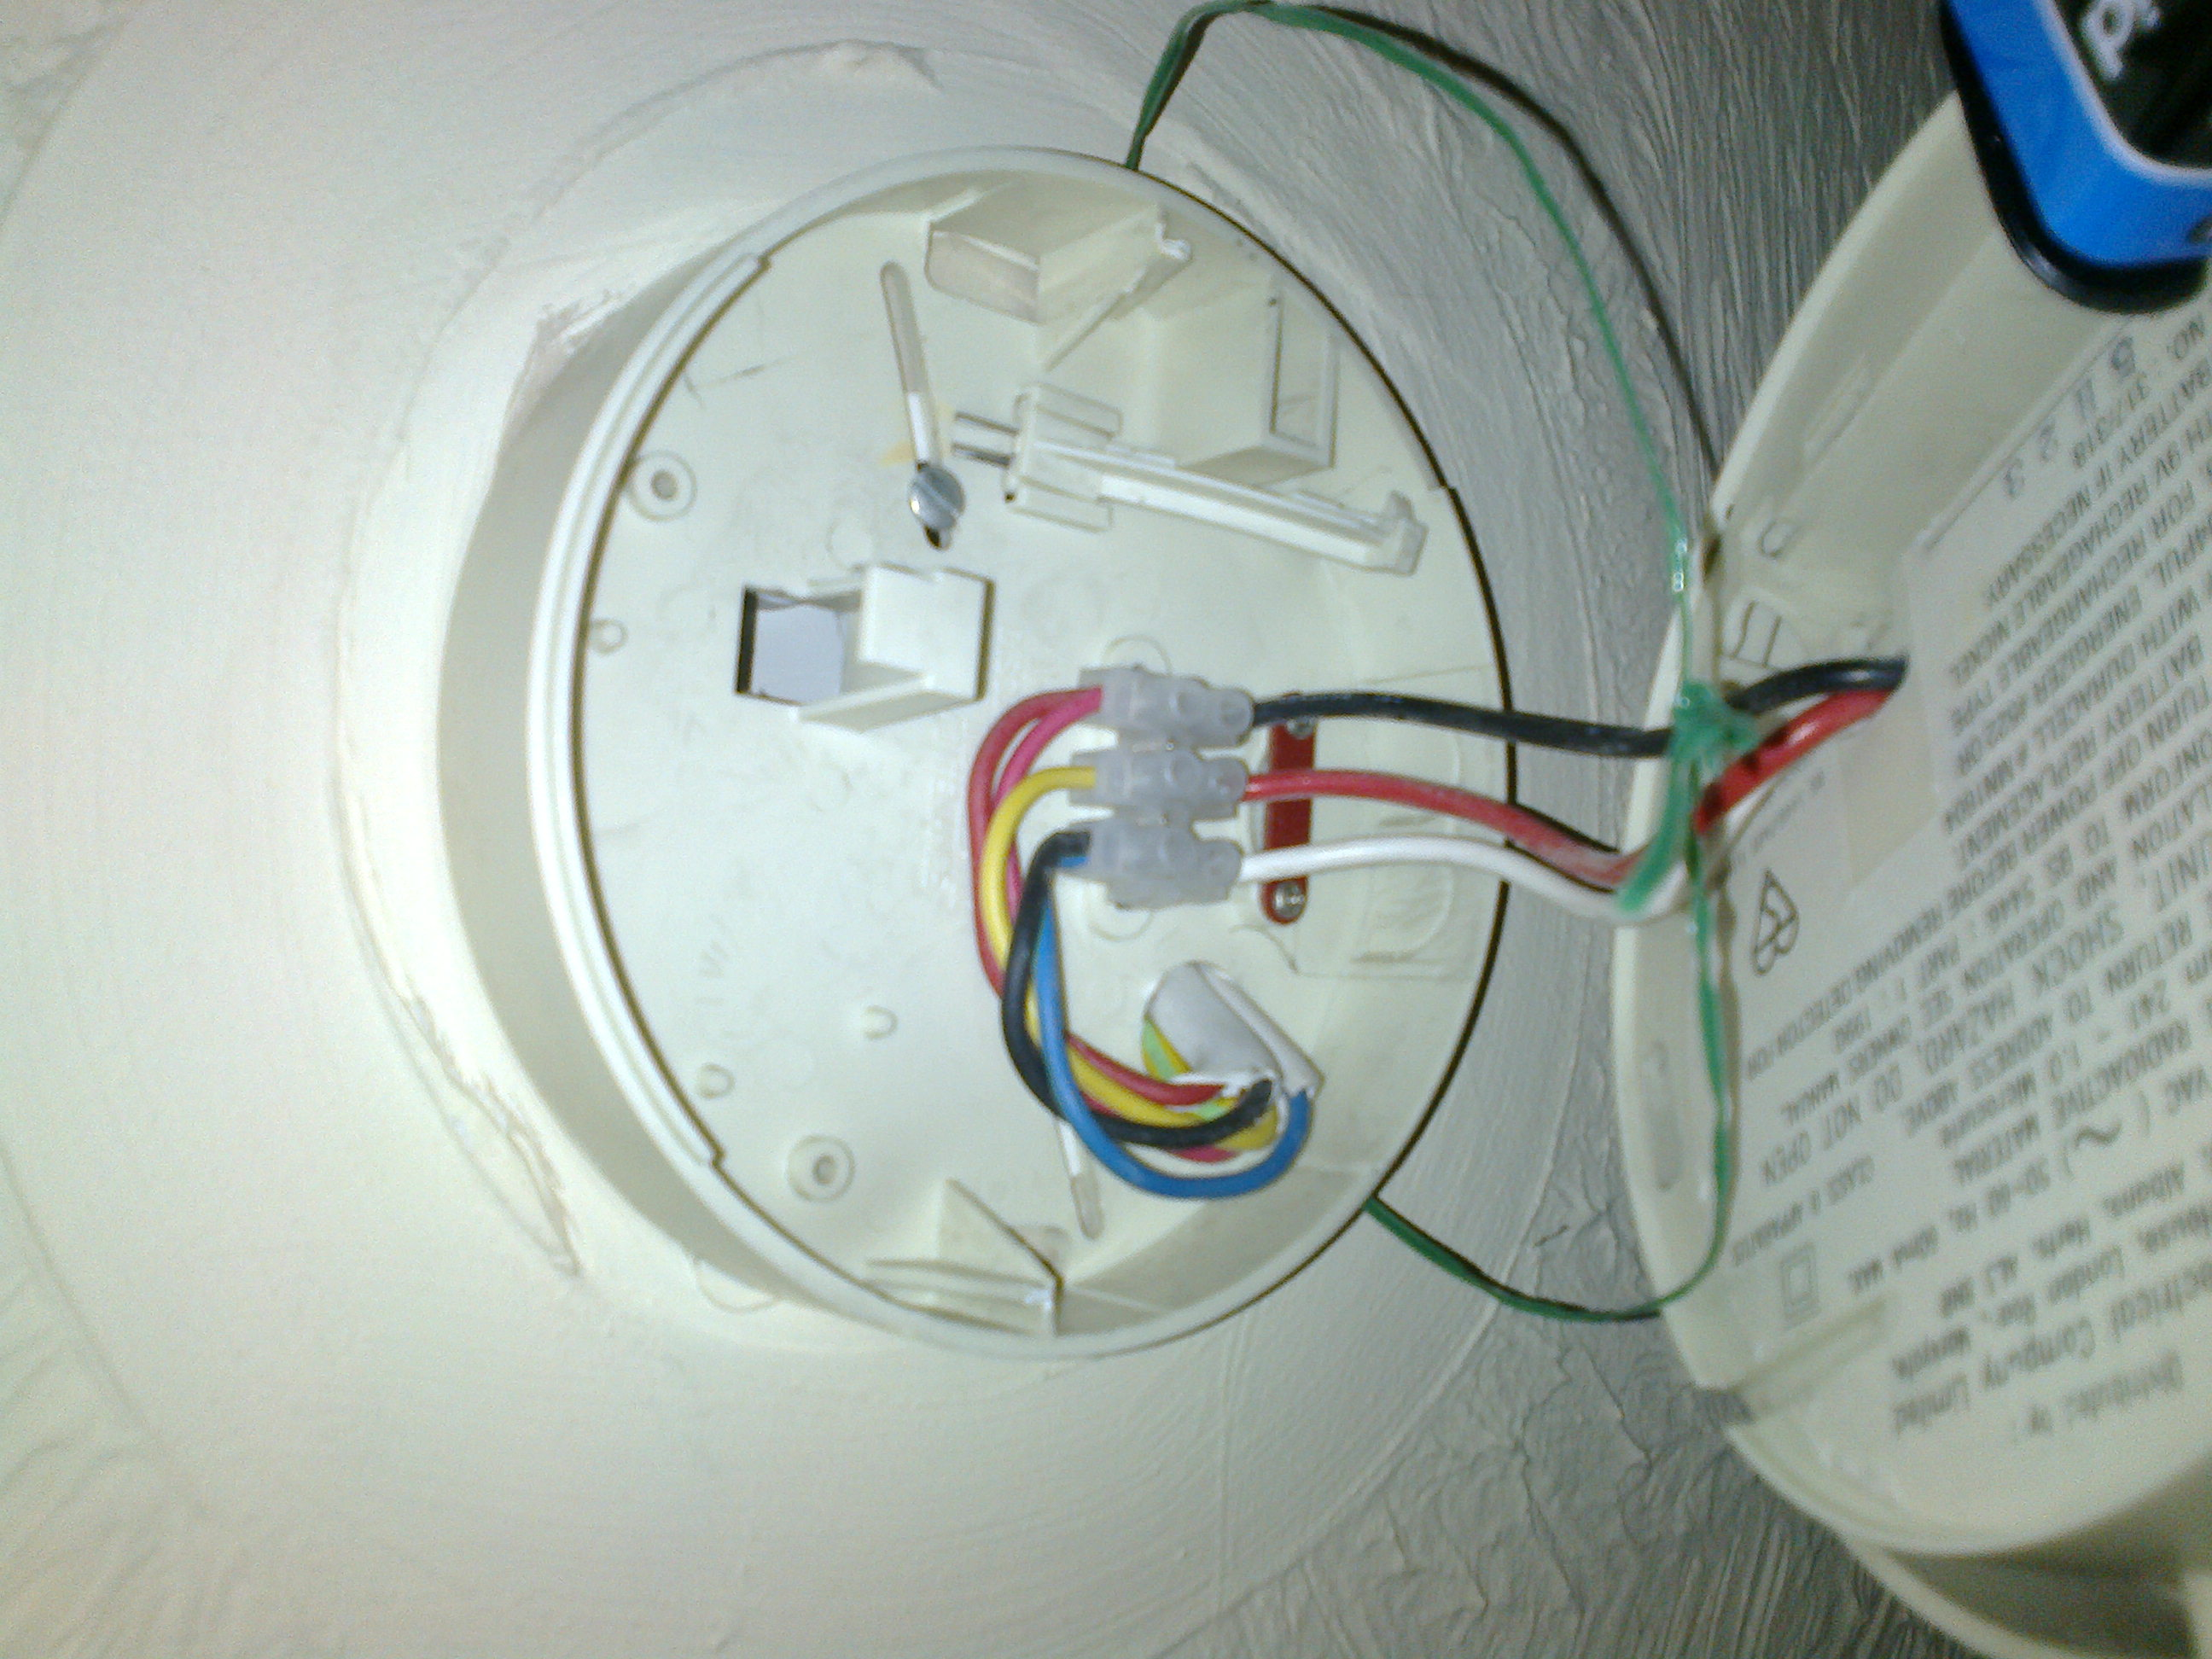 Smoke detector wiring uk example electrical wiring diagram crossed up wiring on smoke alarm nexelec electrician rh nexelec co uk smoke detector wiring harness smoke detector wiring kissimmee asfbconference2016